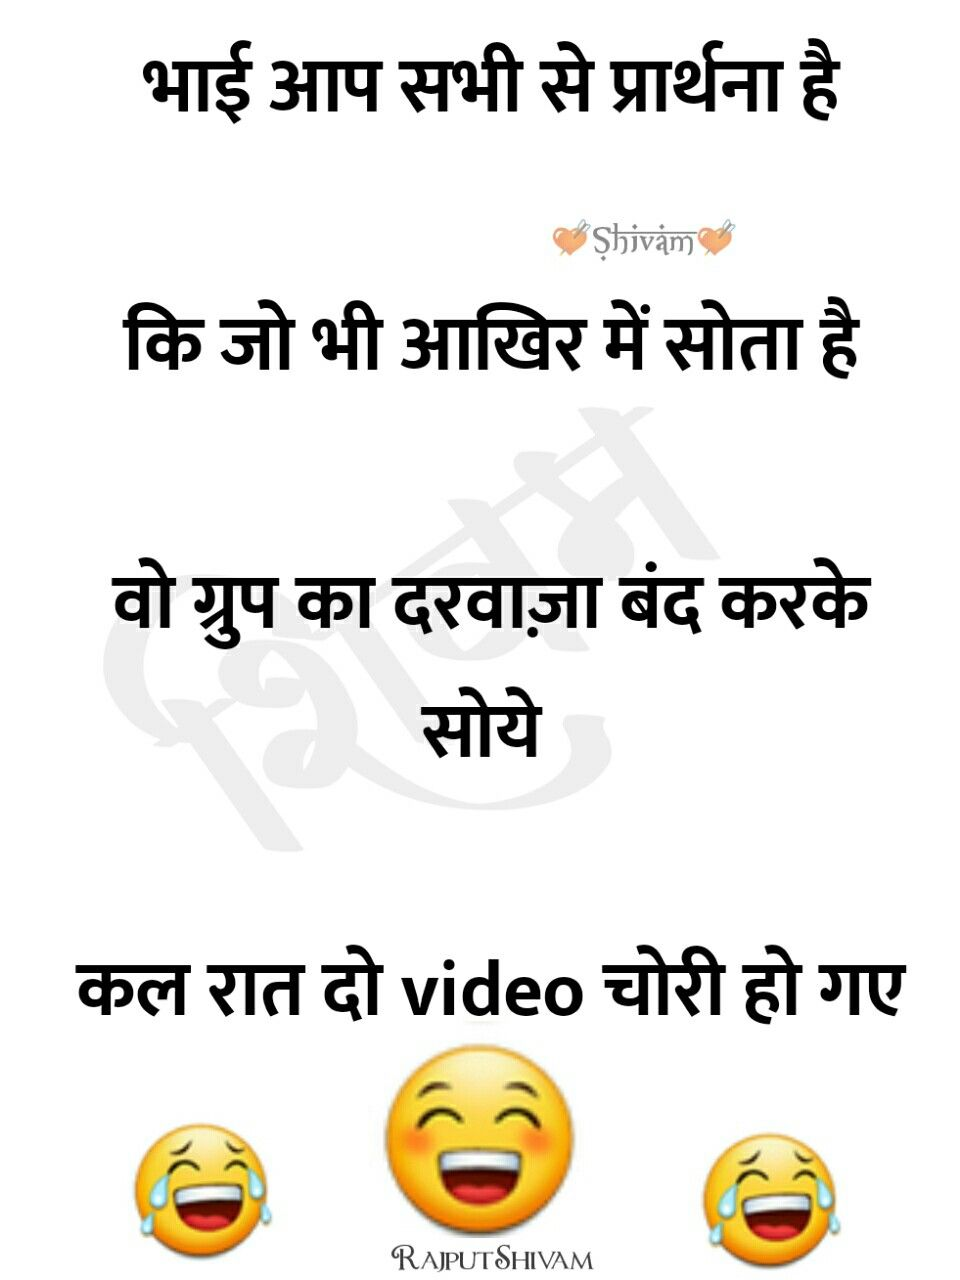 Pin By Shivam On Jokes Latest Funny Jokes Teacher Quotes Funny Movie Quotes Funny